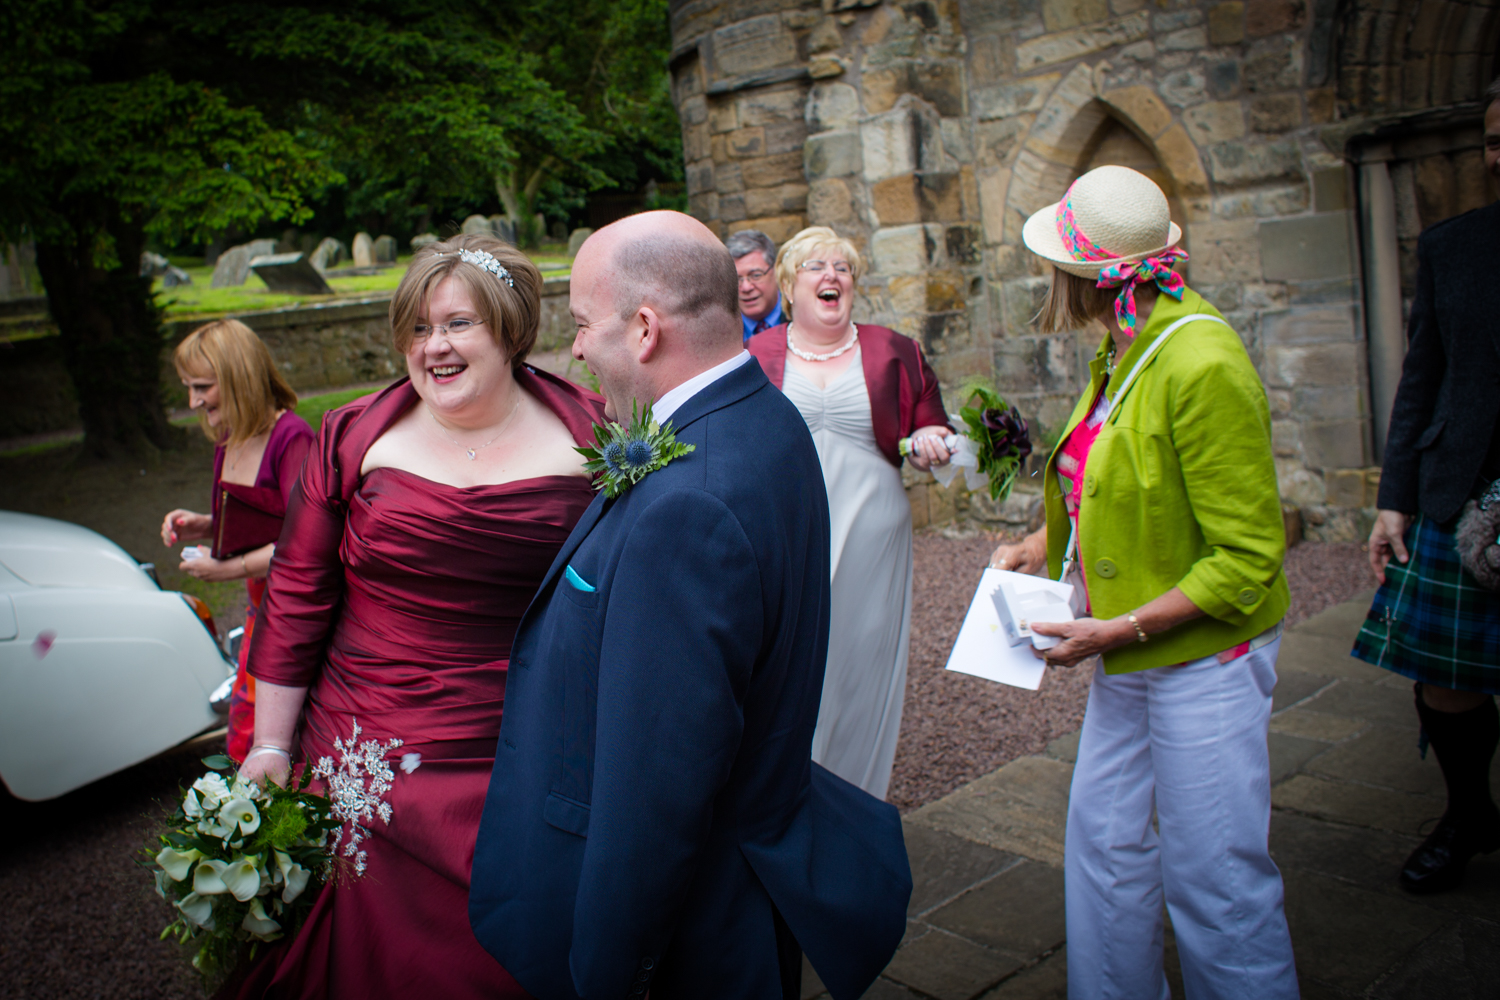 Clare and Charles wedding day blog-37.jpg